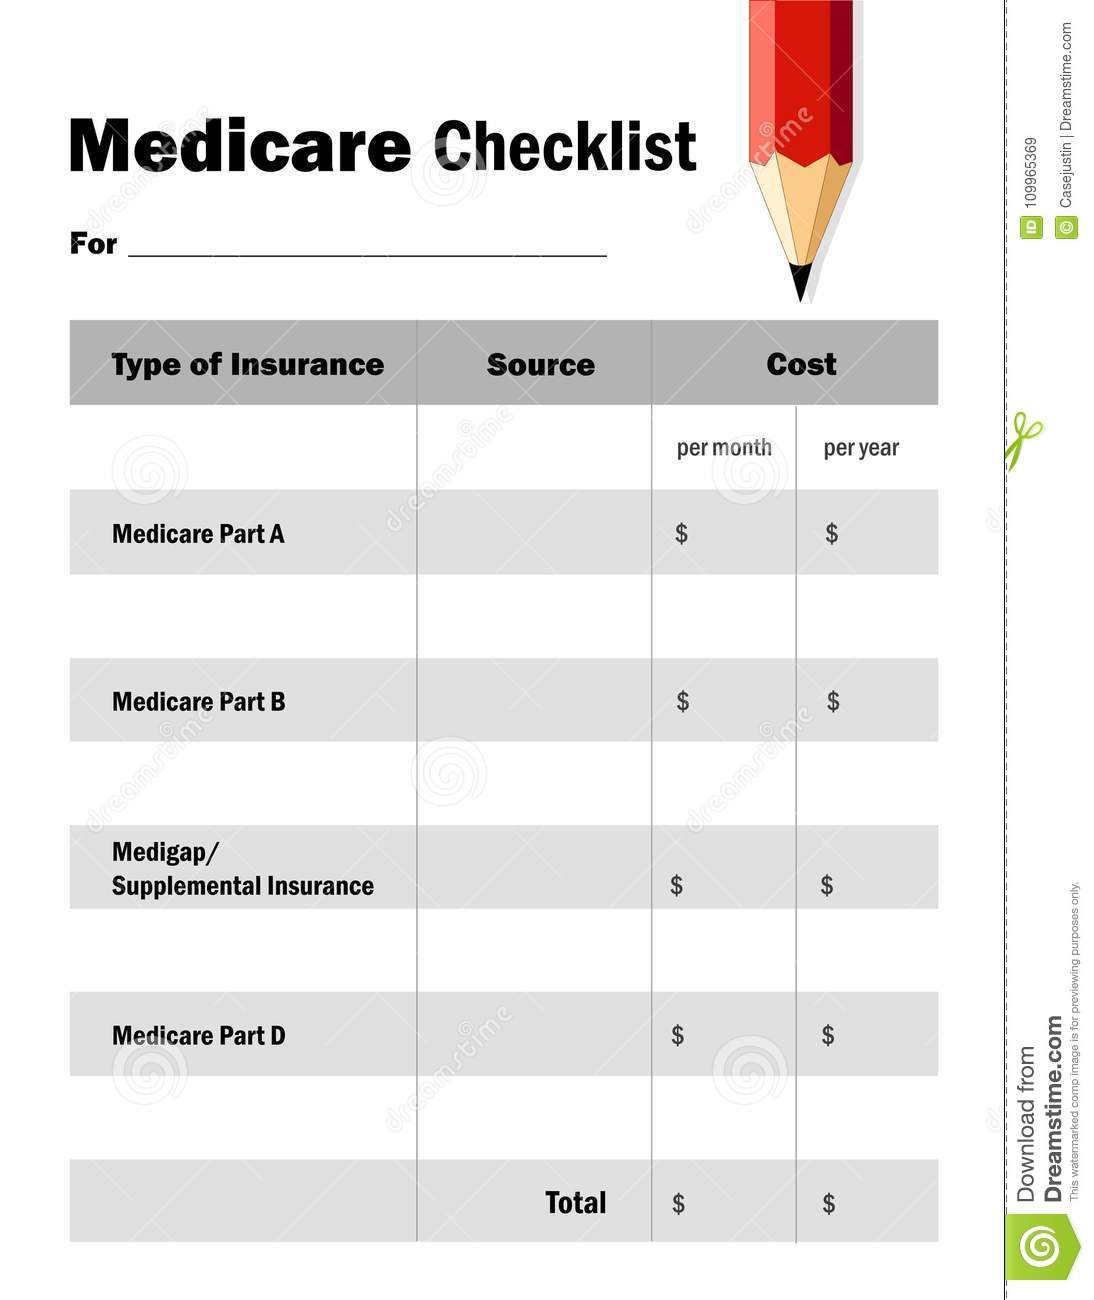 Medicare Checklist Worksheet Fill In The Blanks Red